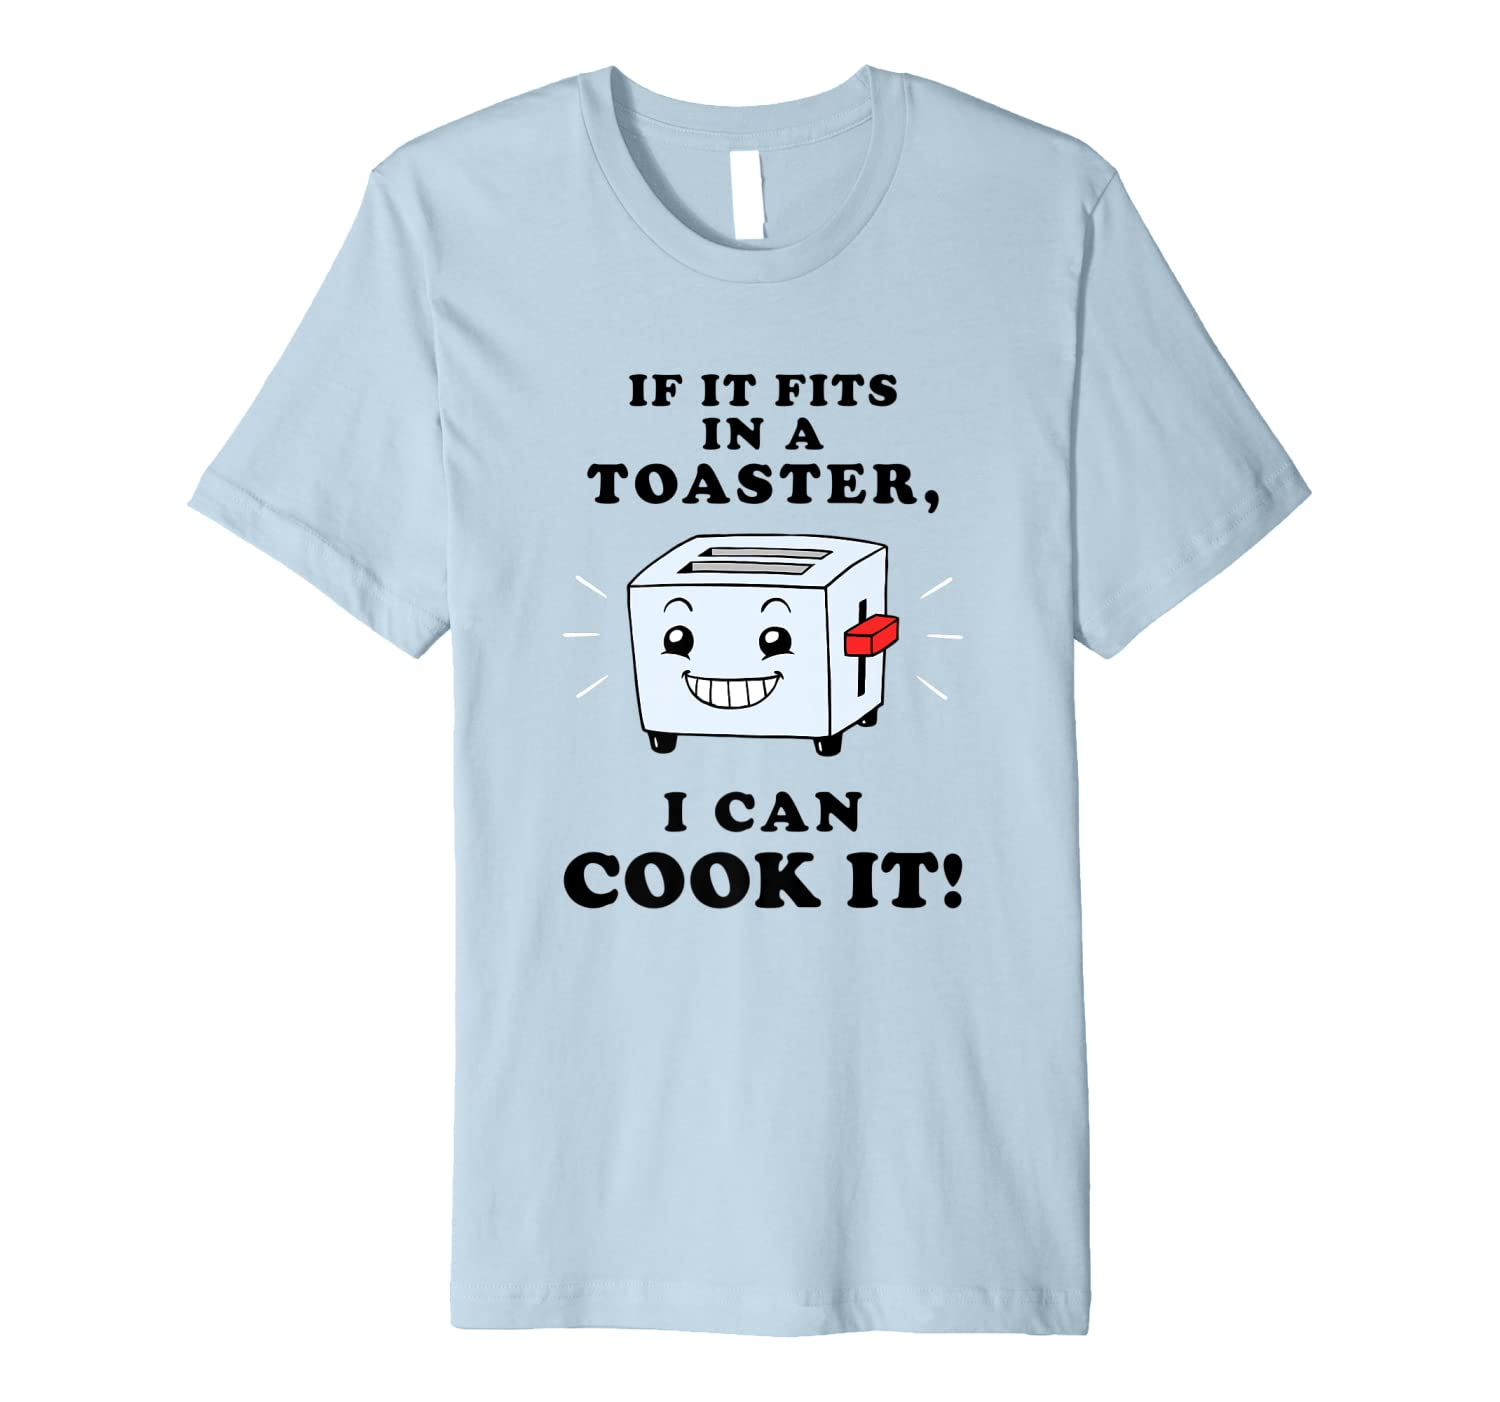 Bad Cook T-Shirt If It Fits In A Toaster, I Can Cook It